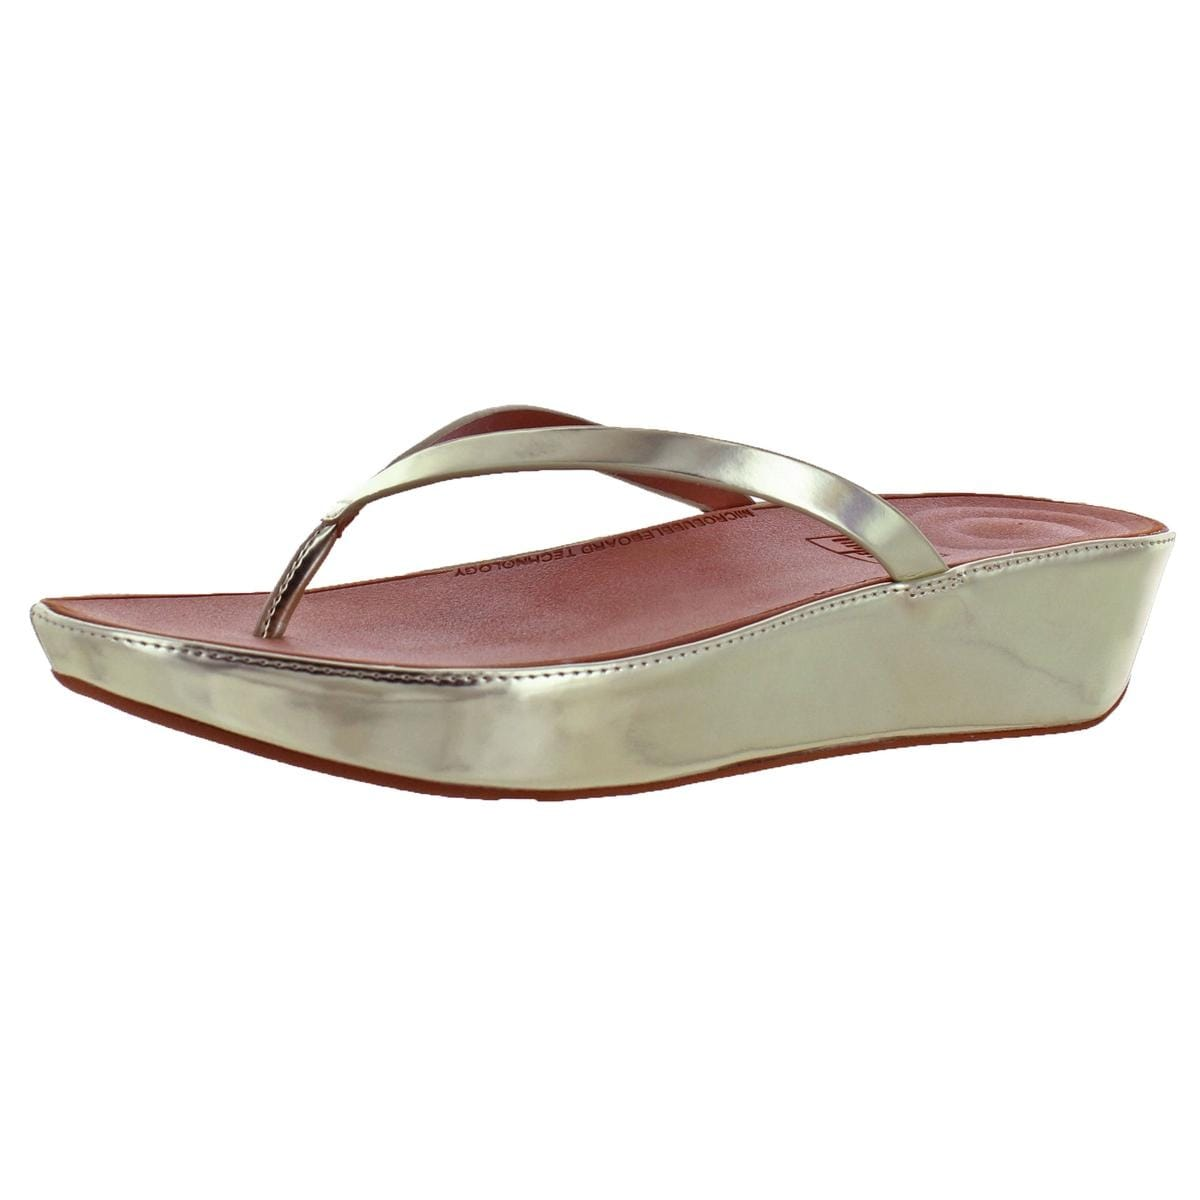 5e0b8daba Shop Fitflop Womens Linny Toe-Thong Thong Sandals Leather - Free Shipping  Today - Overstock - 26030164